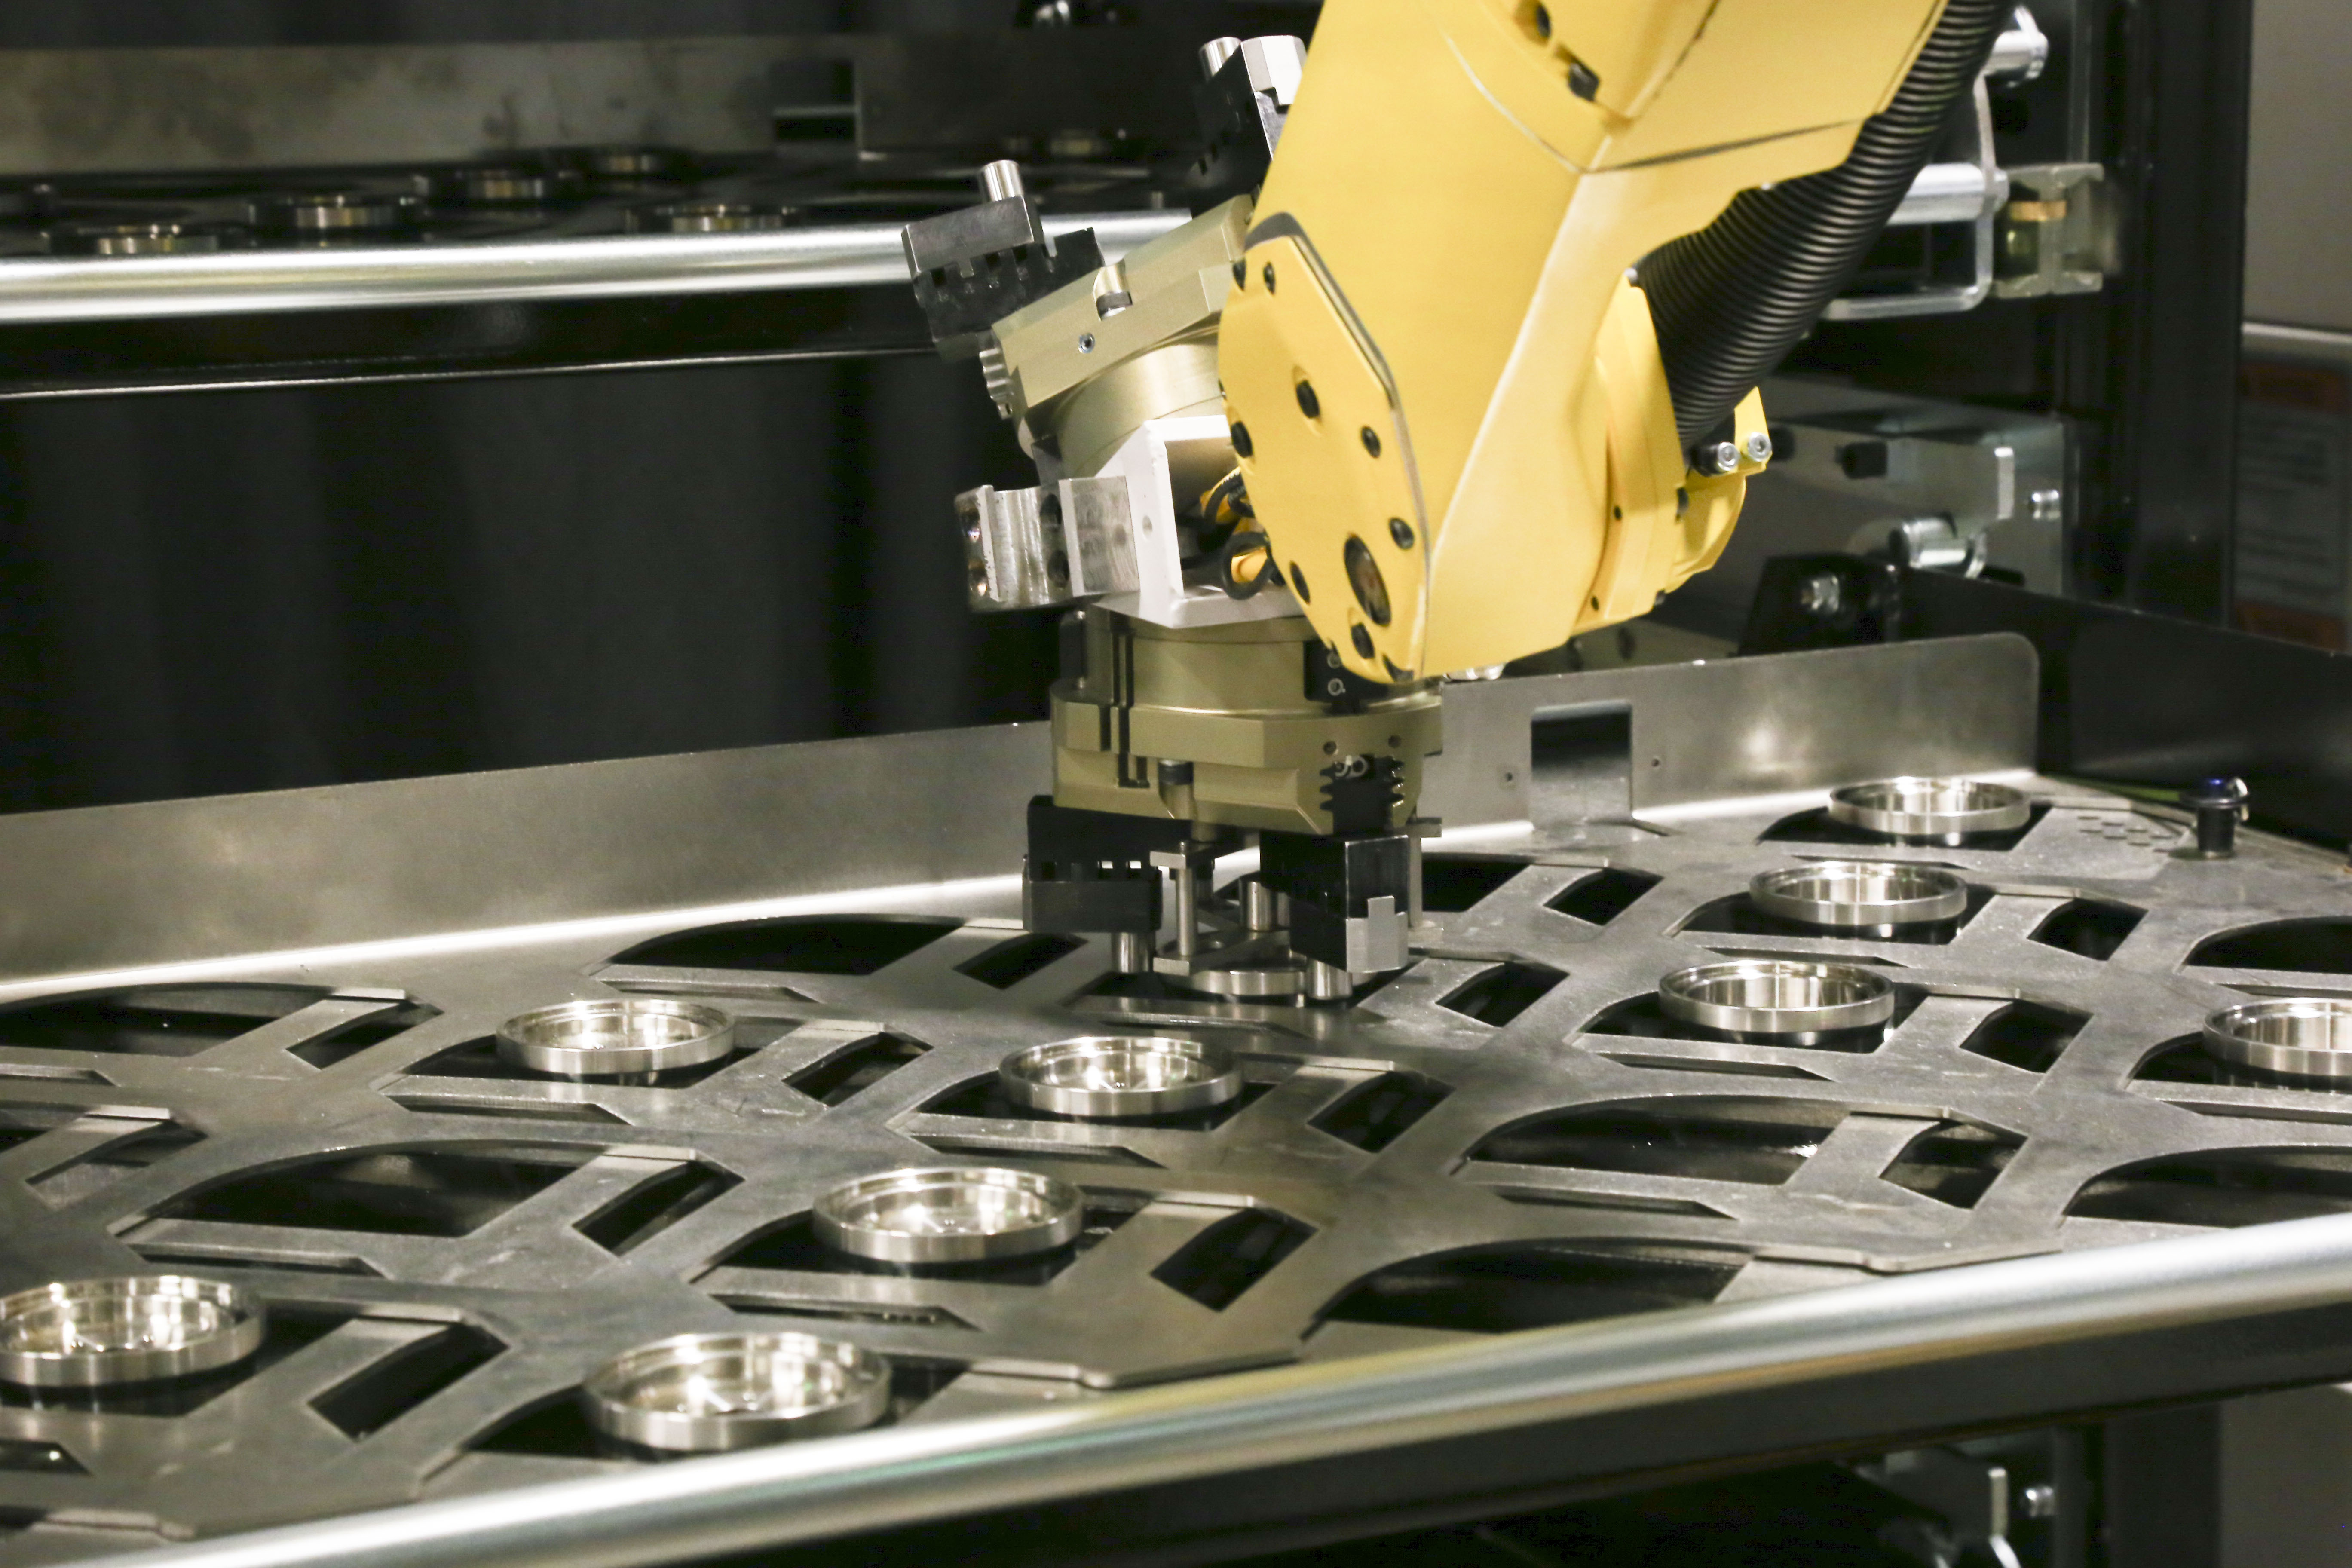 Automating your machine improves productivity and saves time